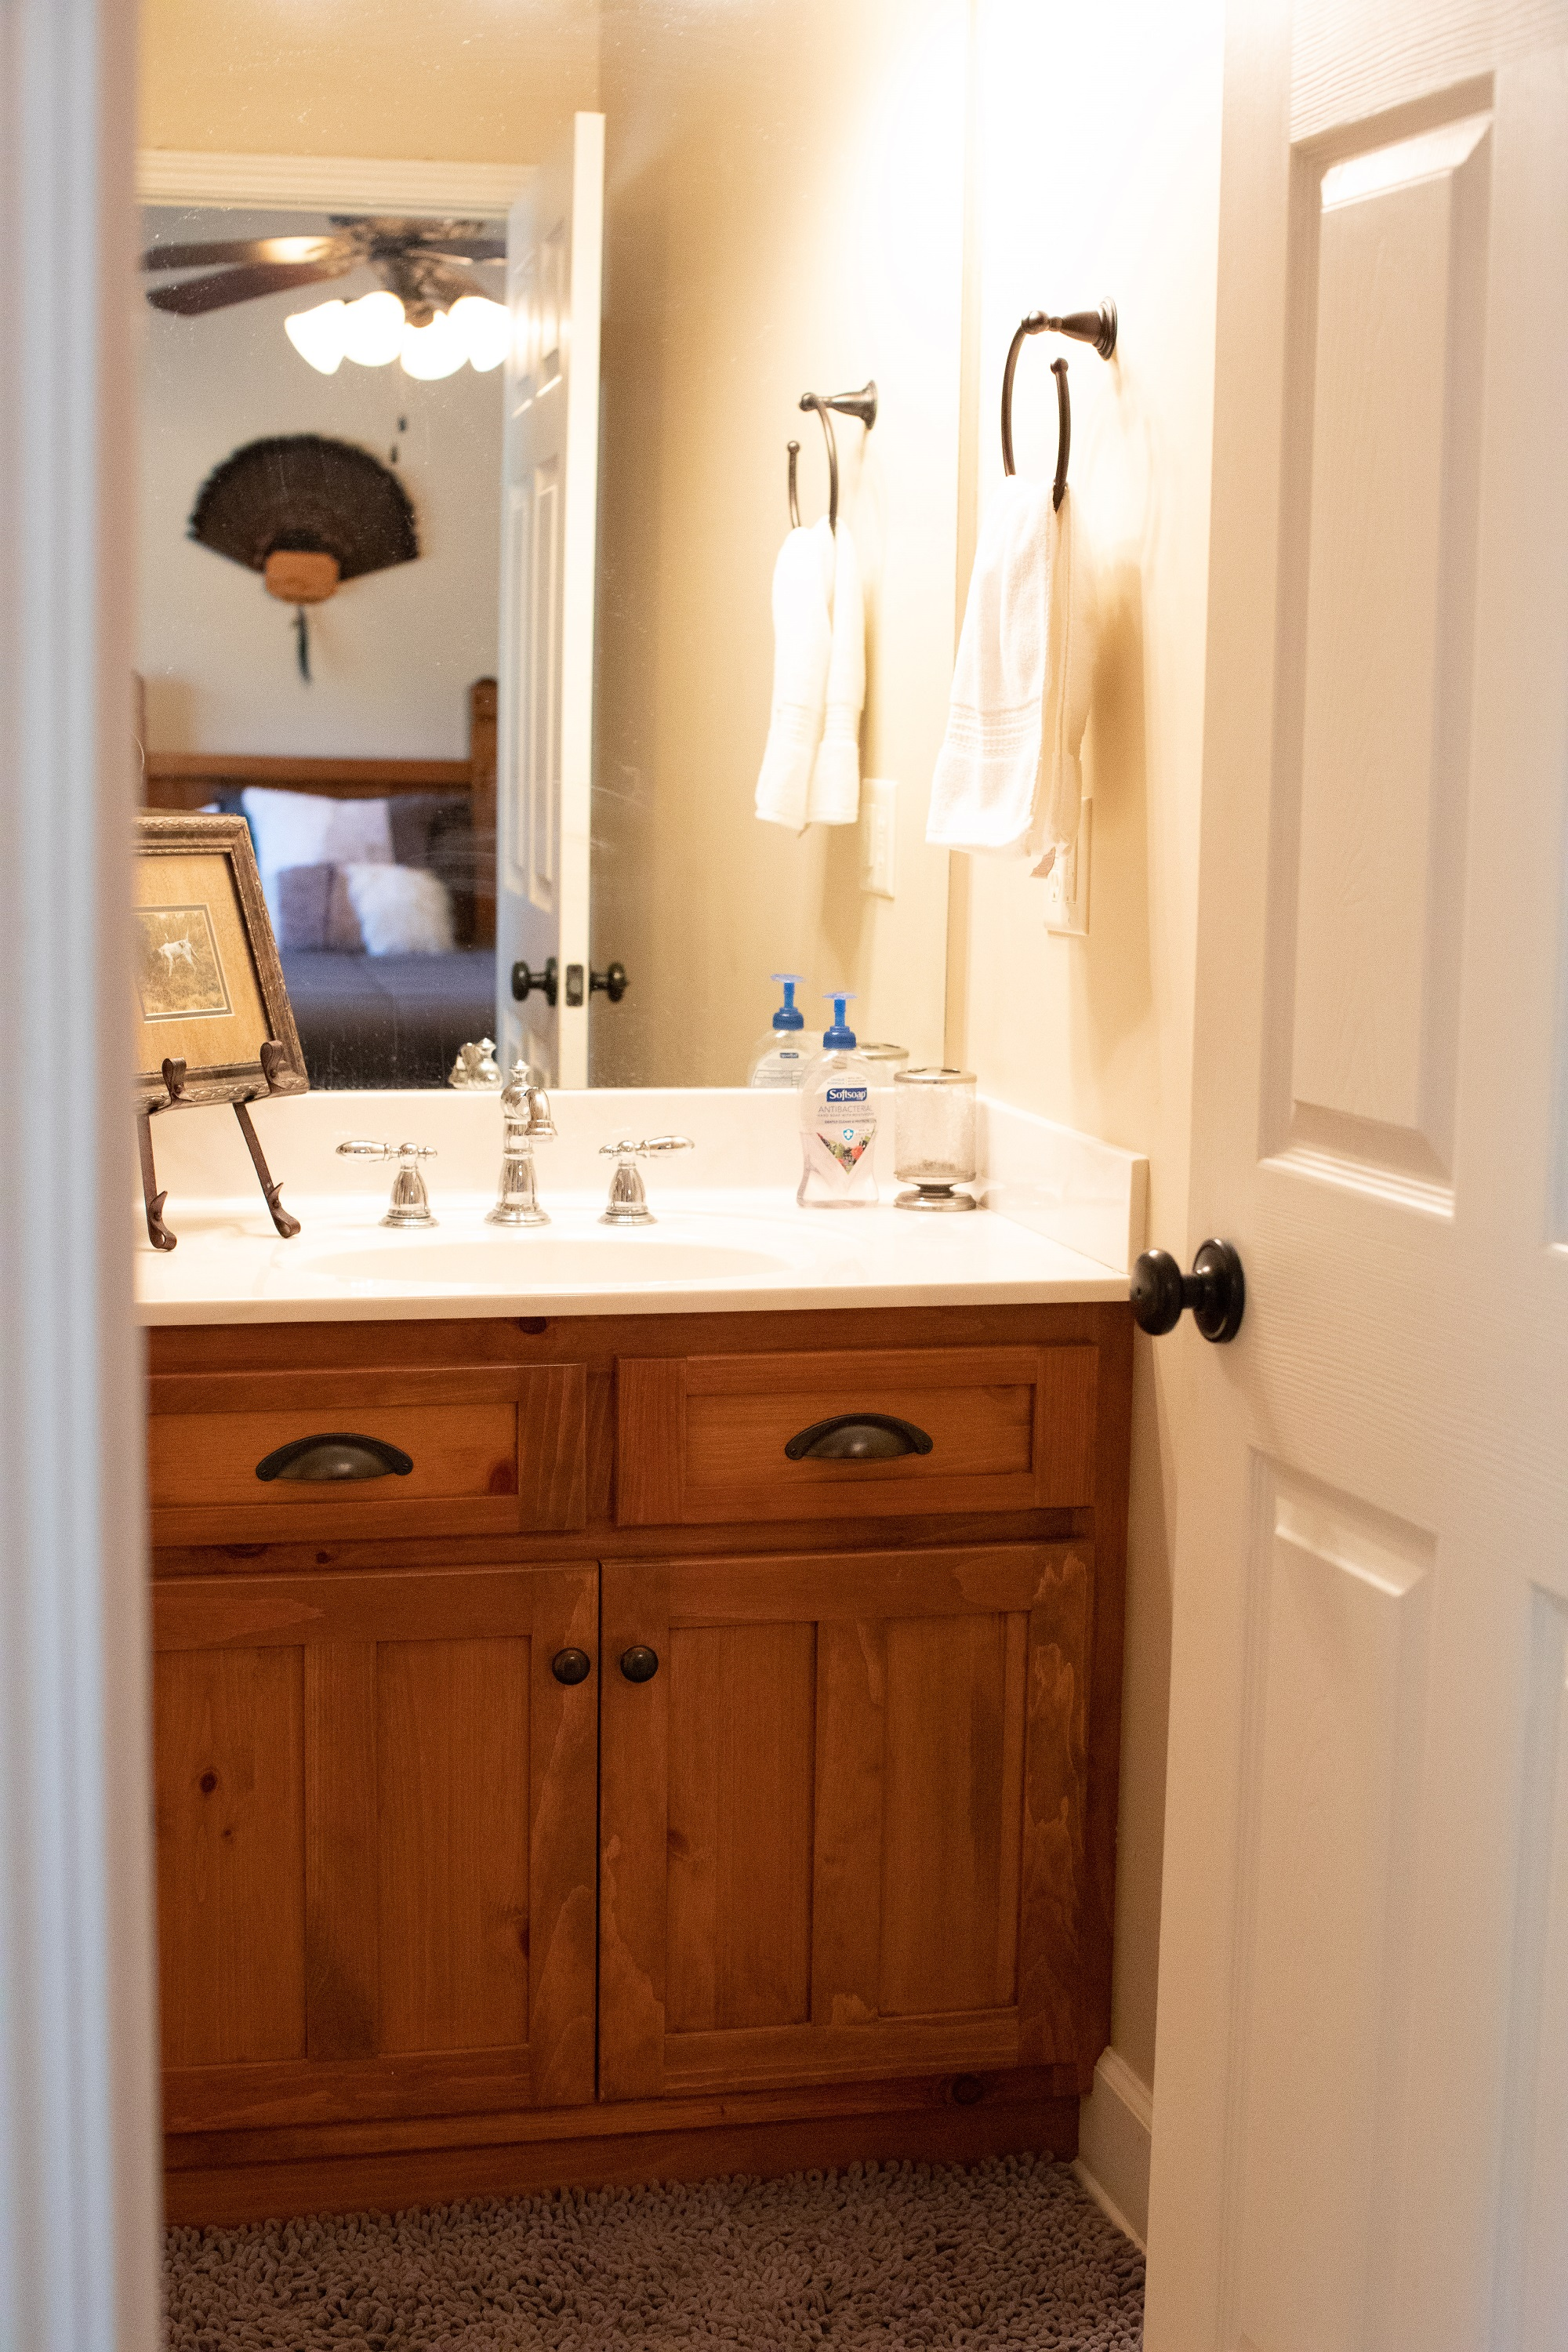 BranHillPlantationBathroom12000X3000